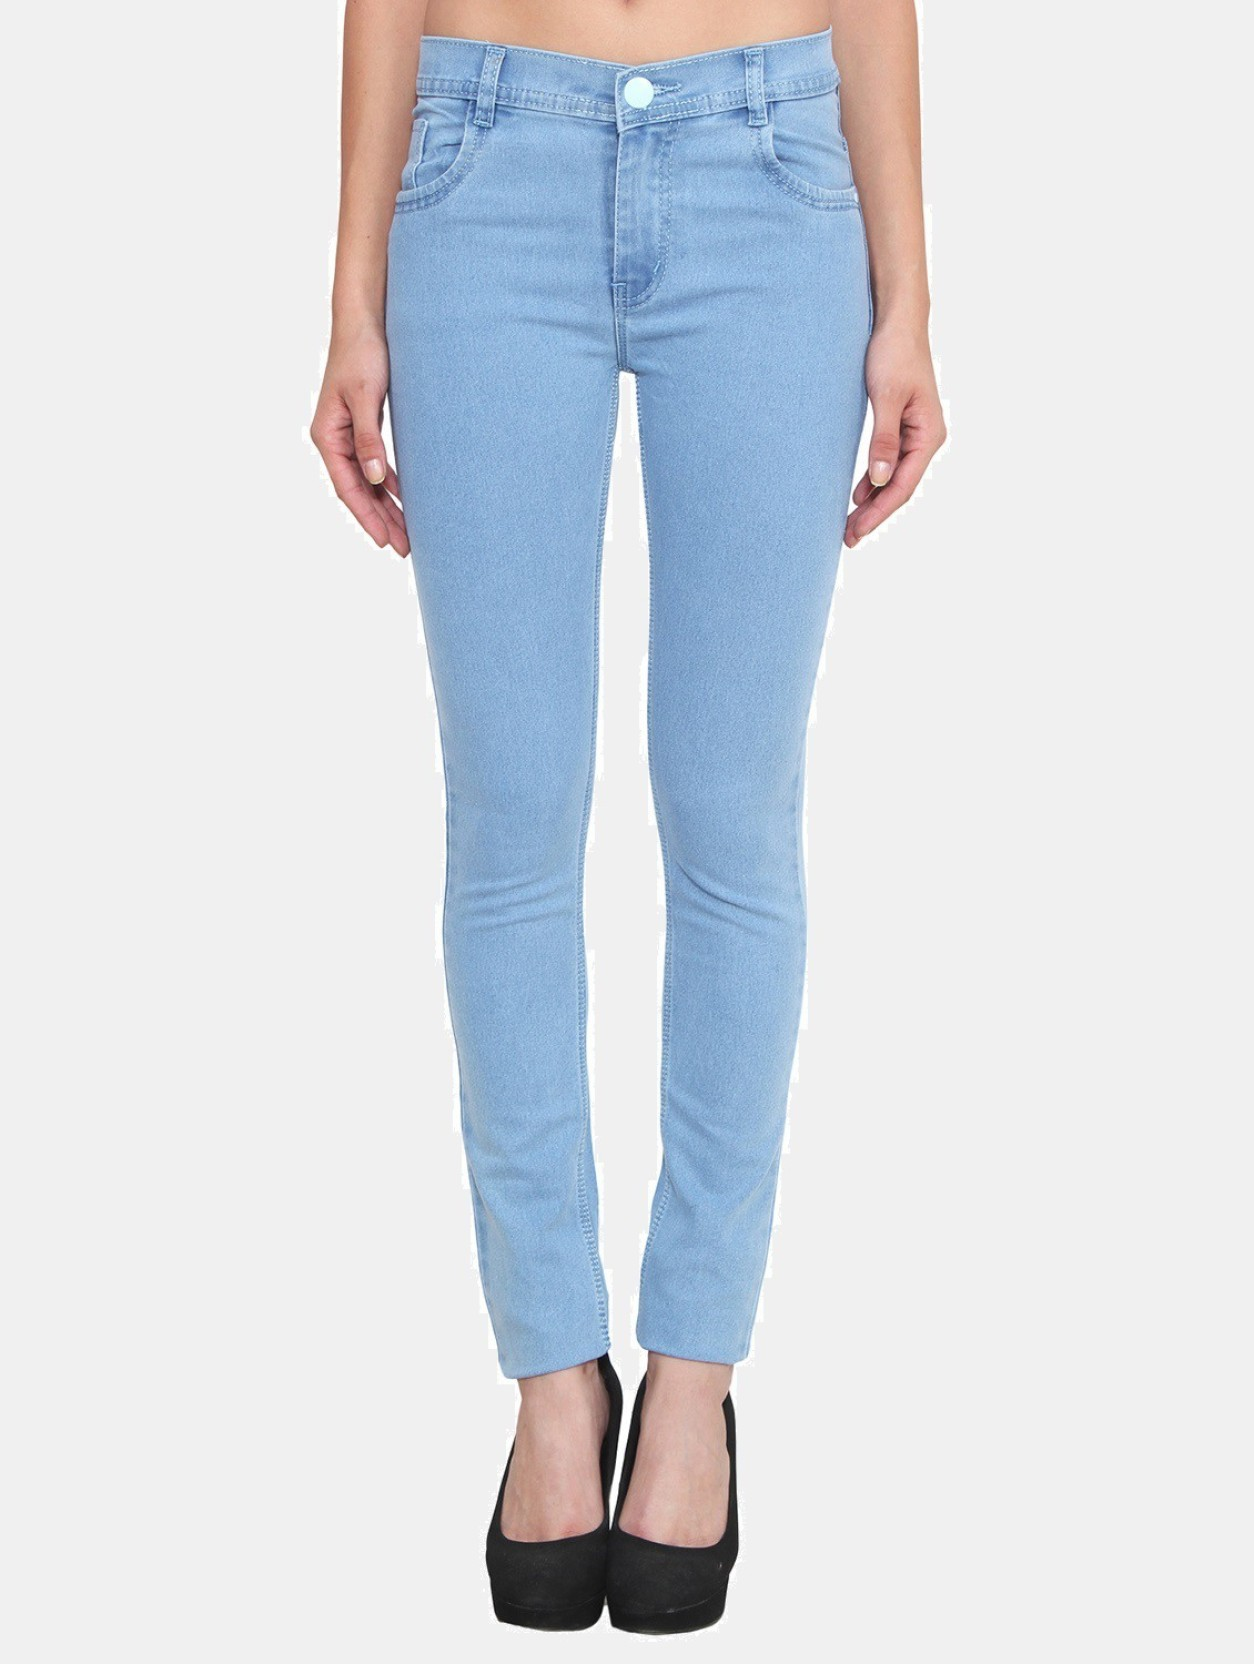 Levi's Jeans- Buy Levi's Women Jeans online in India. Finest collection of Levi's Jeans that too at upto 70% off only at smashingprogrammsrj.tk All India FREE Shipping. Cash on Delivery available.